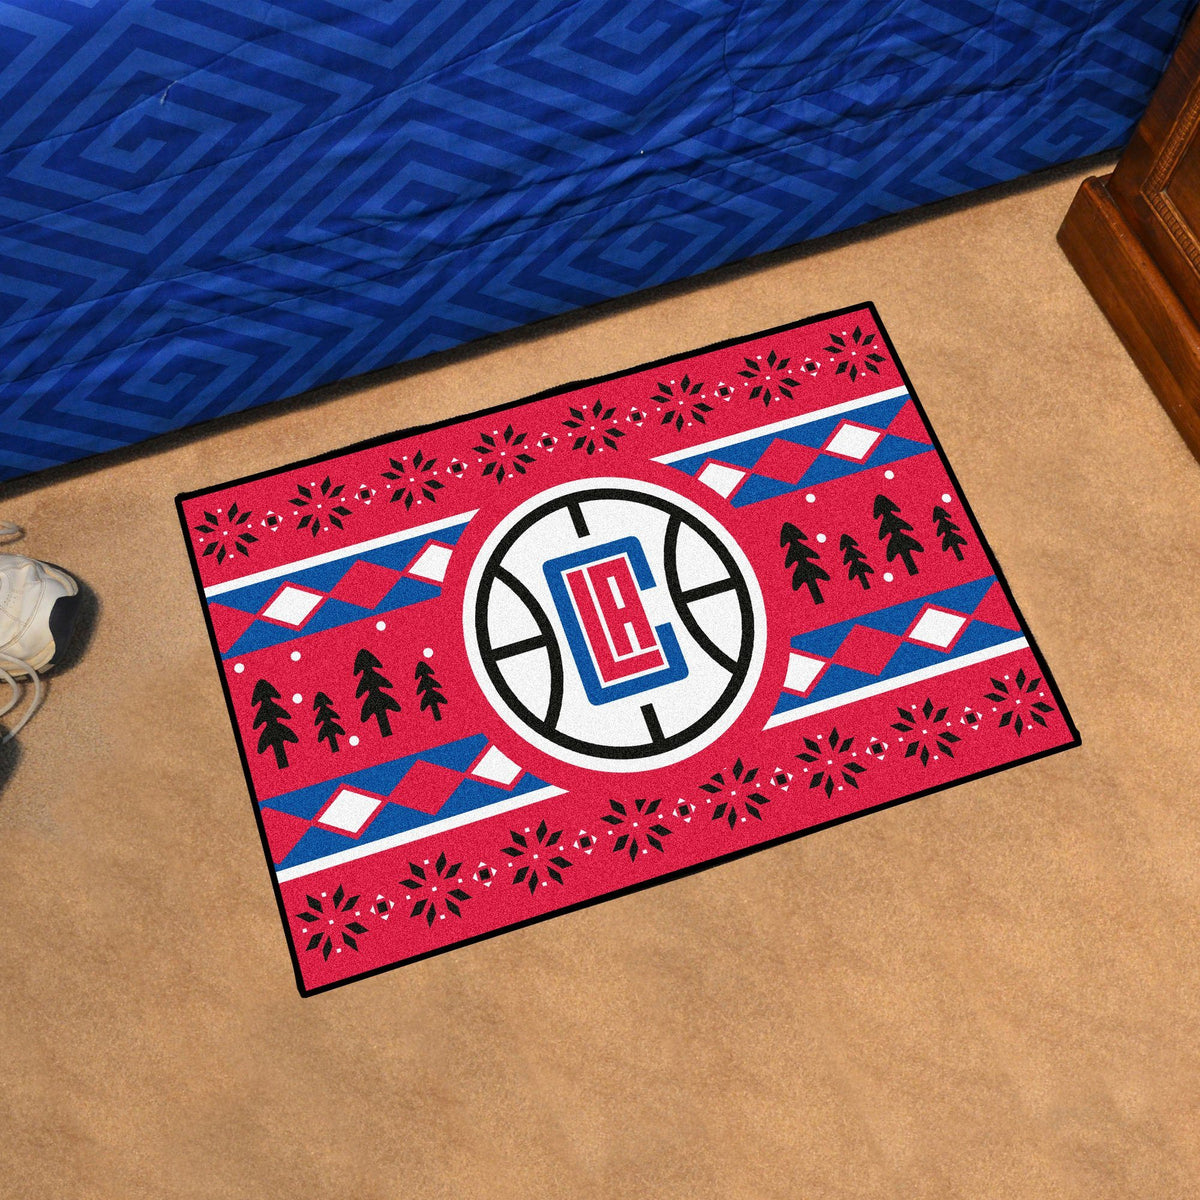 NBA - Holiday Sweater Starter Mat NBA Mats, Rectangular Mats, Holiday Sweater Starter Mat, NBA, Home Fan Mats Los Angeles Clippers